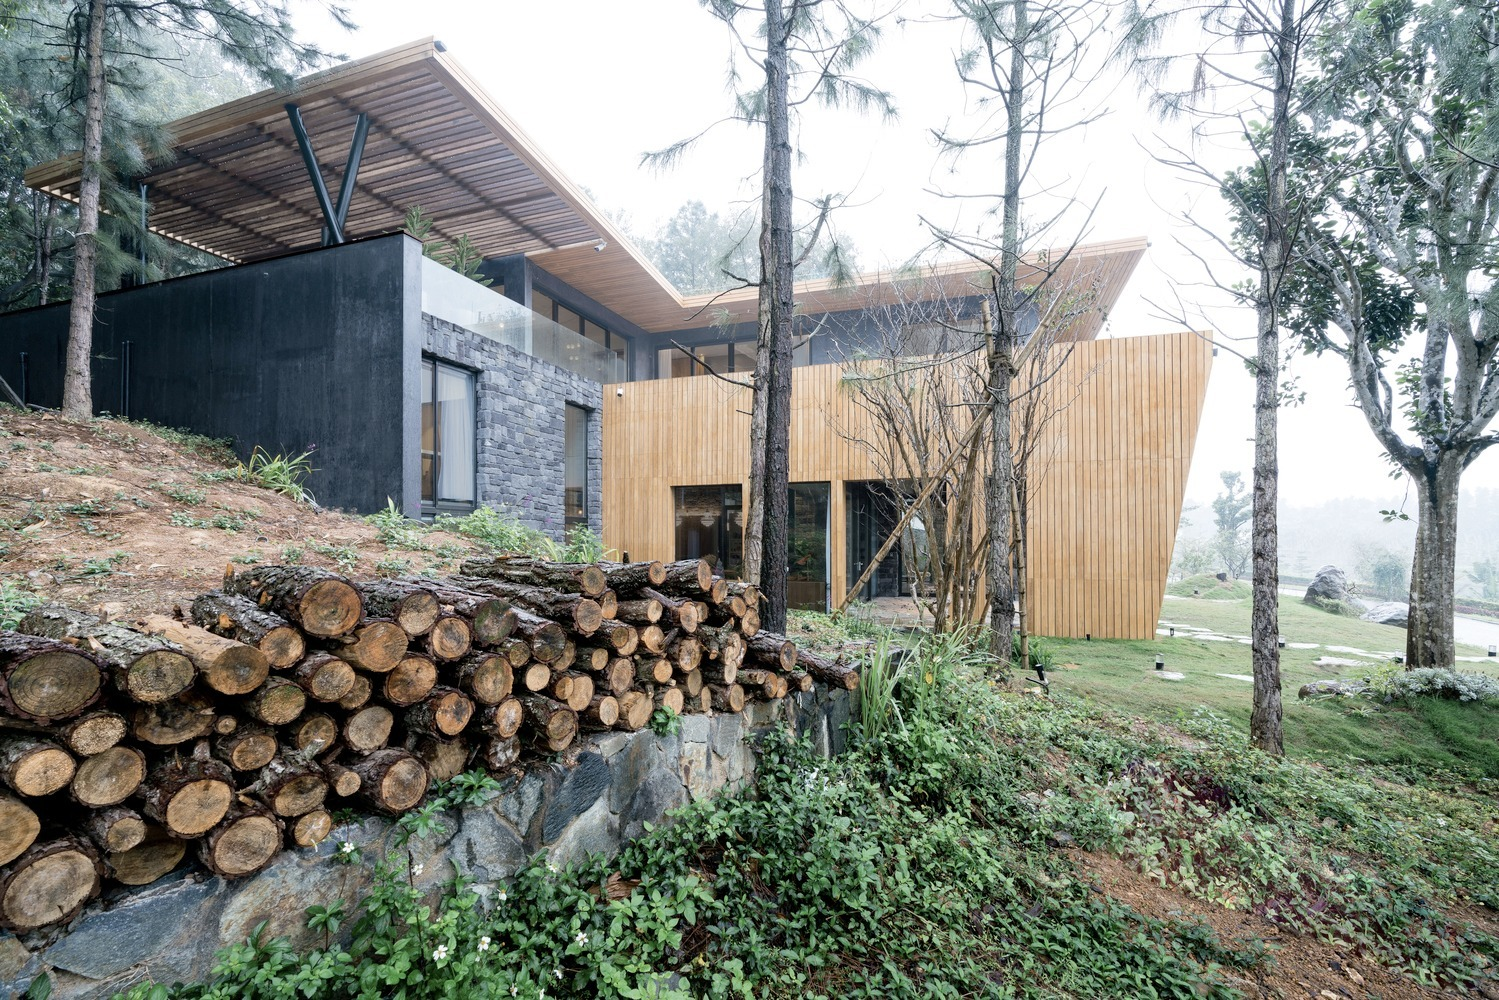 Teak House / Pham Thanh Huy - architecture - red_wolf | ello